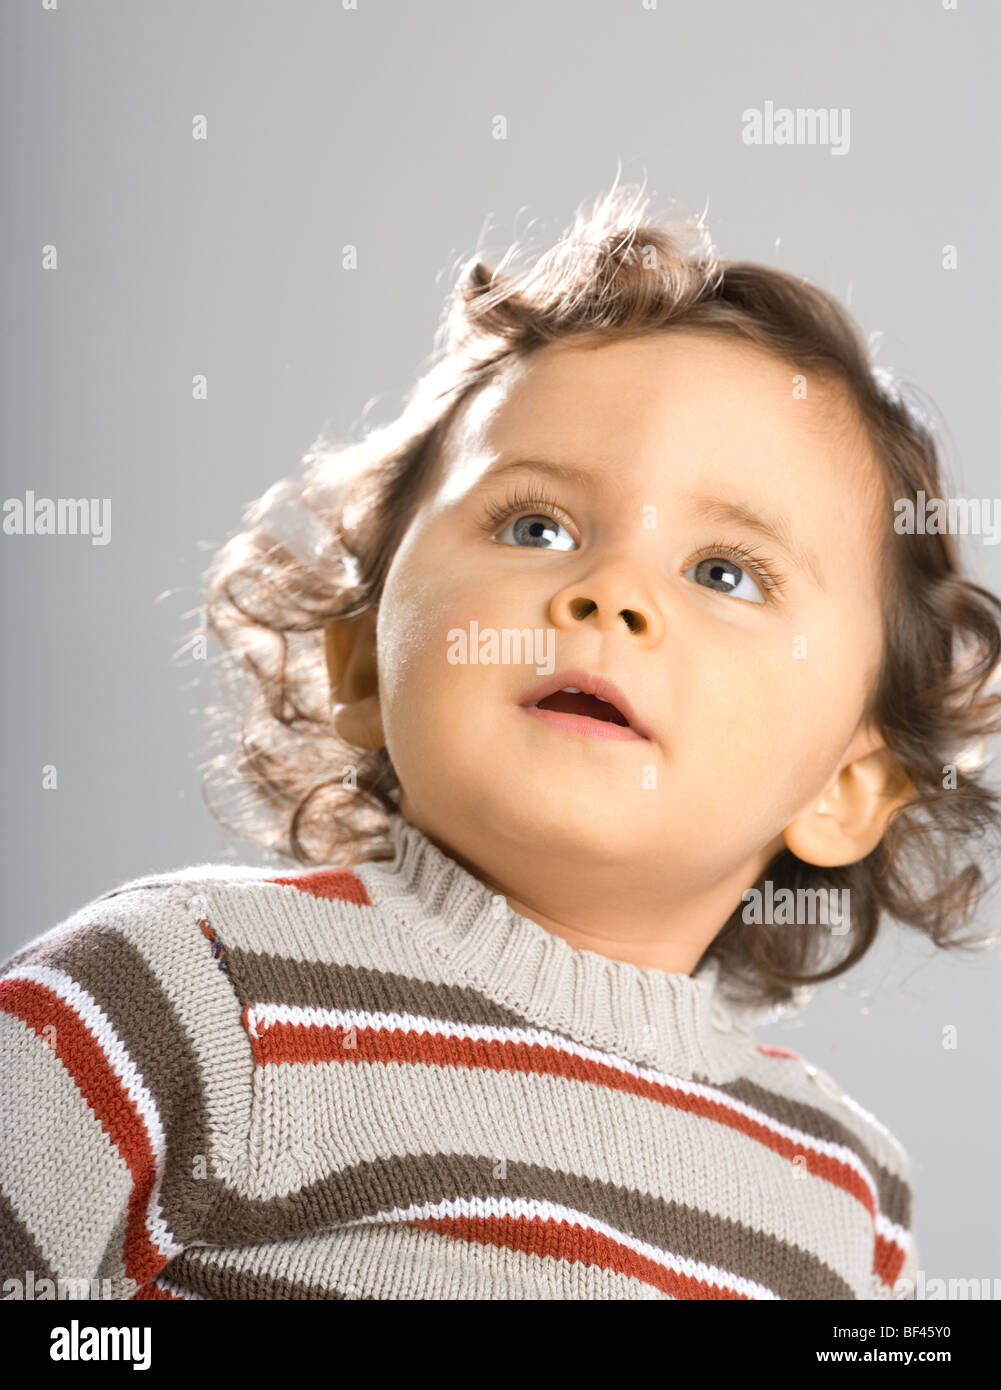 18 month old Toddler - Stock Image